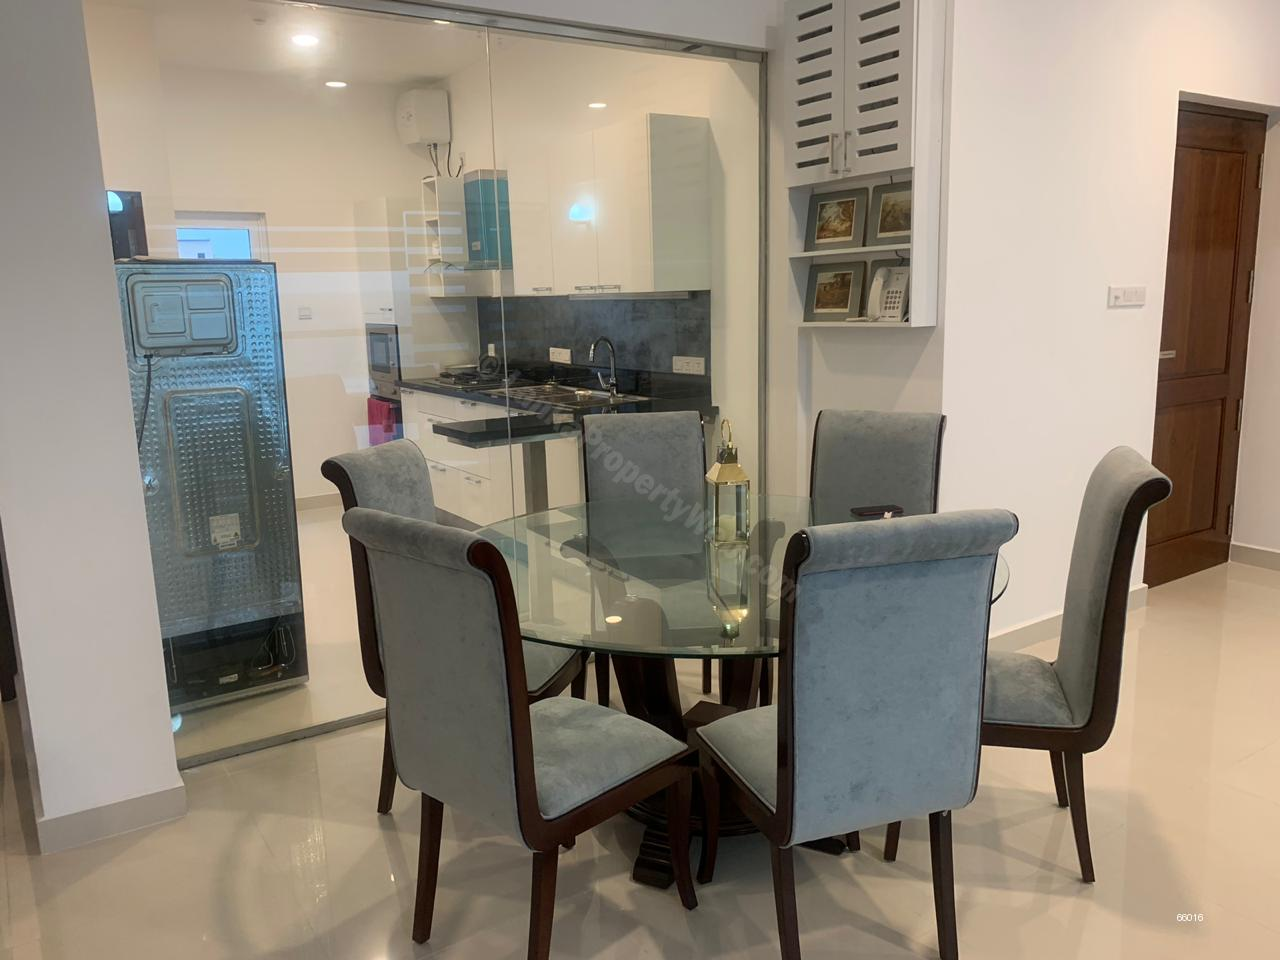 Apartment for rent in Colombo 4 - Luxury Apartments for Short term Rent in Colombo 4